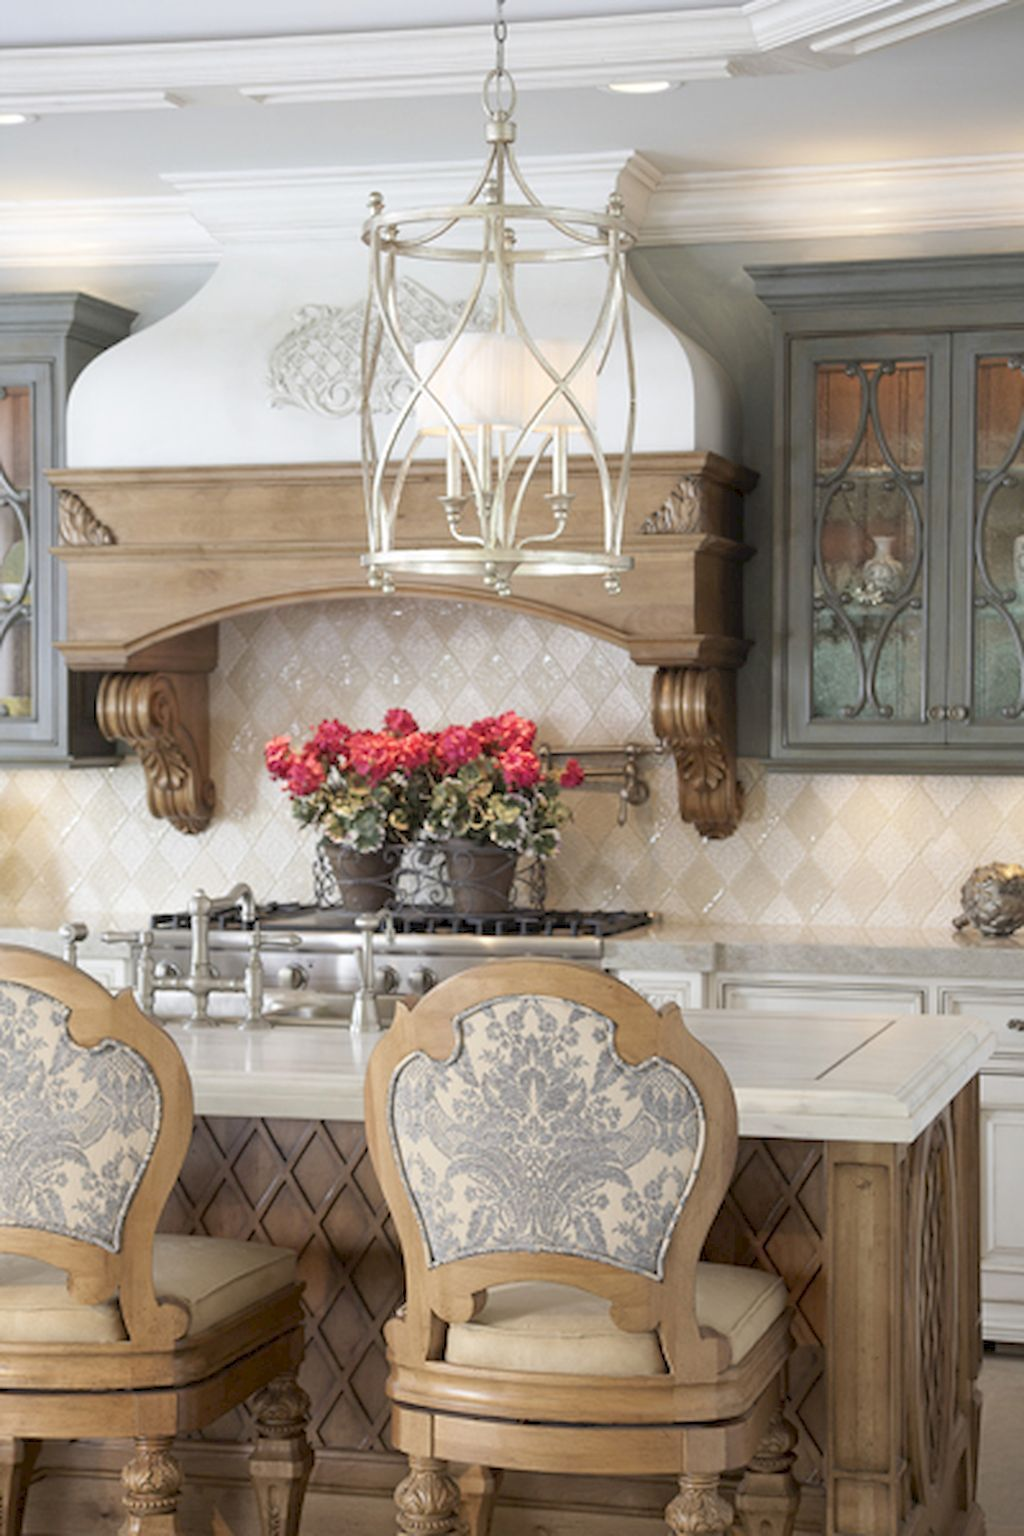 French country kitchen design & decor ideas (23) | Inside stuff ...